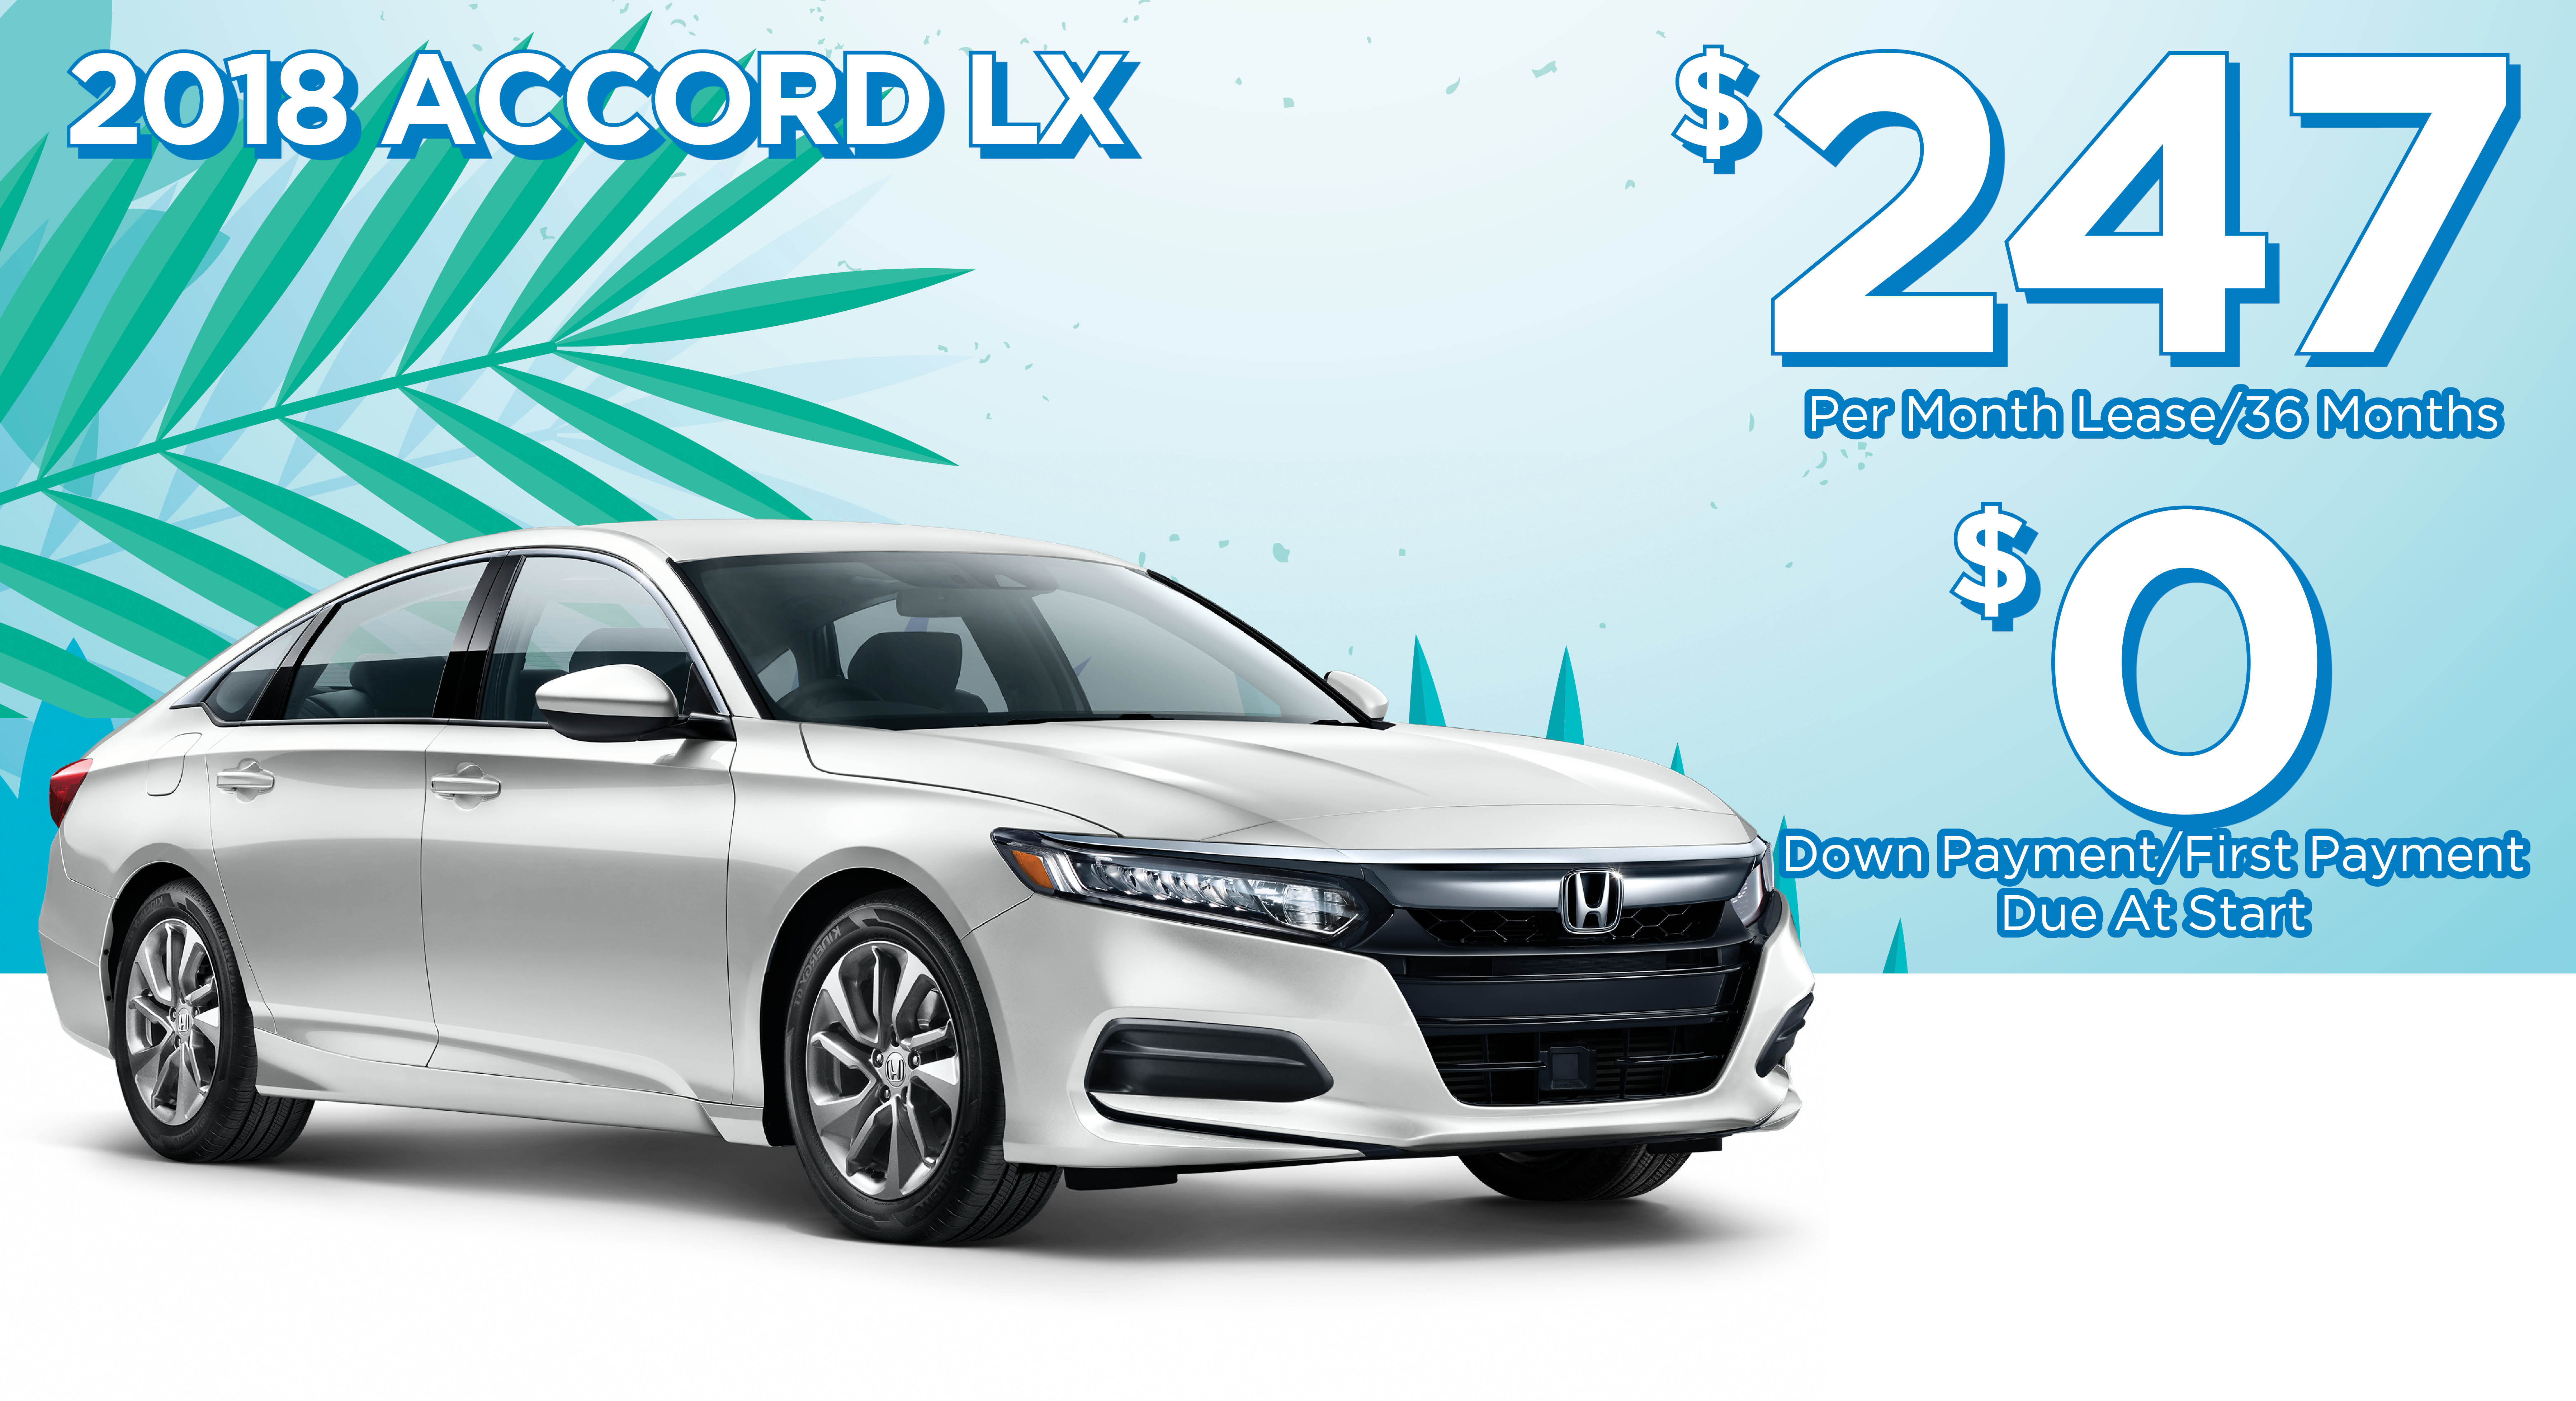 sale marie lx for front v cr sault sport trim drive lakes select honda compact vehicles specials ste great img in utility new automatic wheel lease